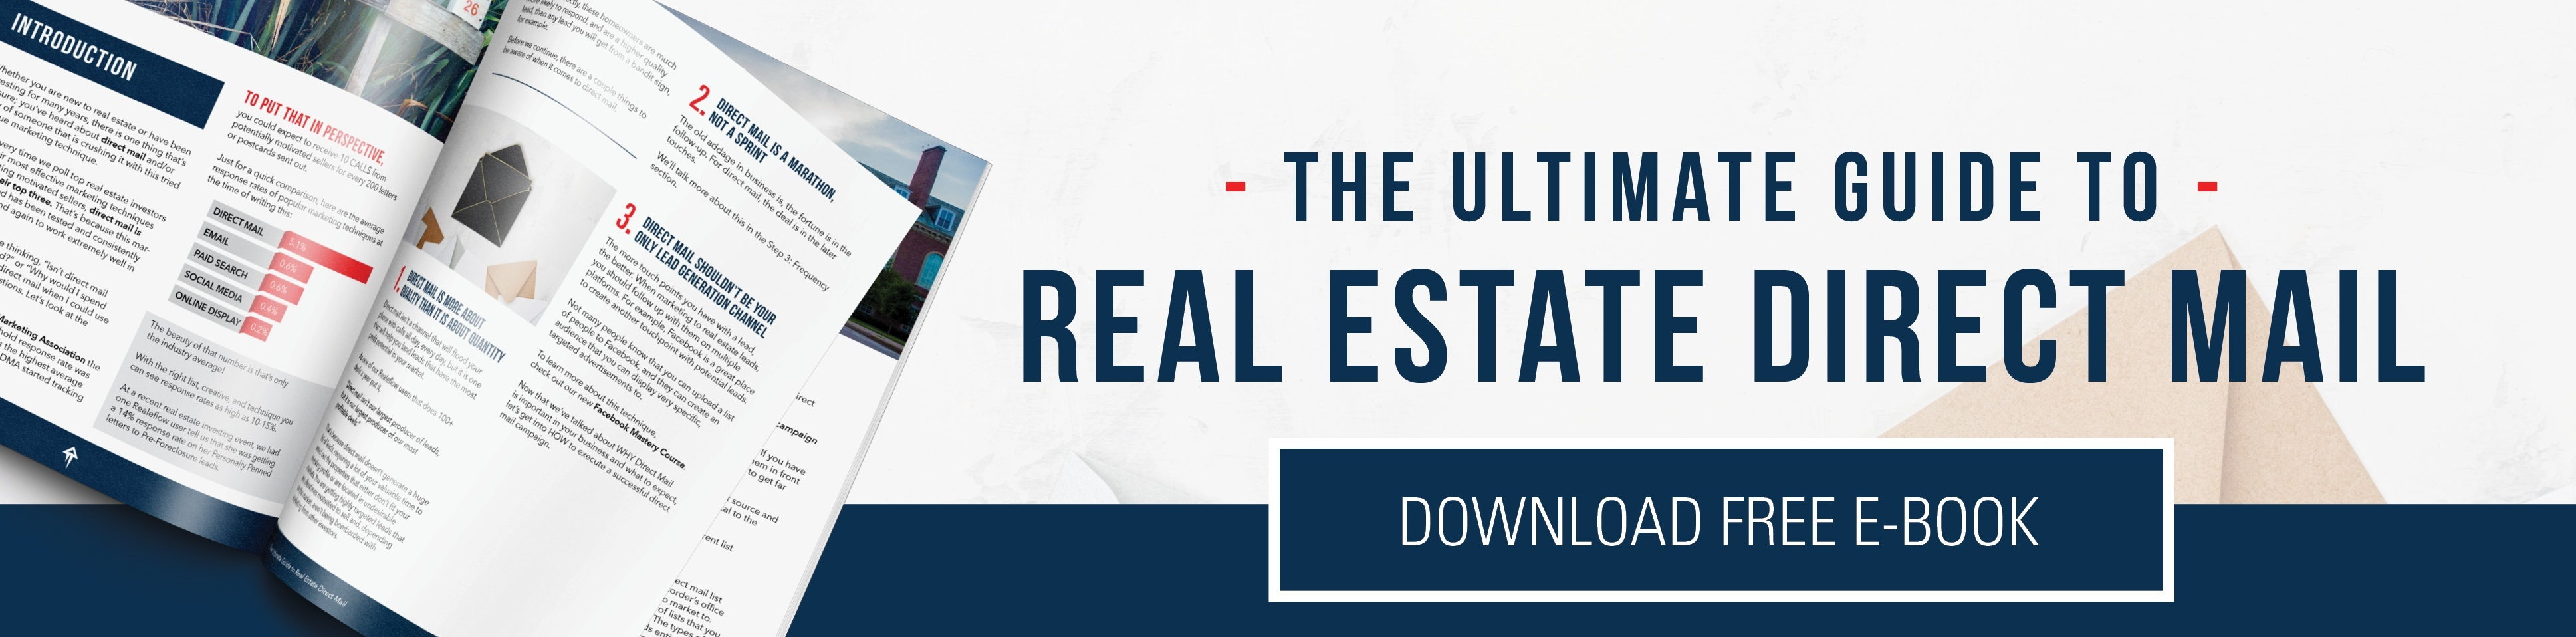 the-ultimate-guide-to-real-estate-direct-mail-guide-ebook